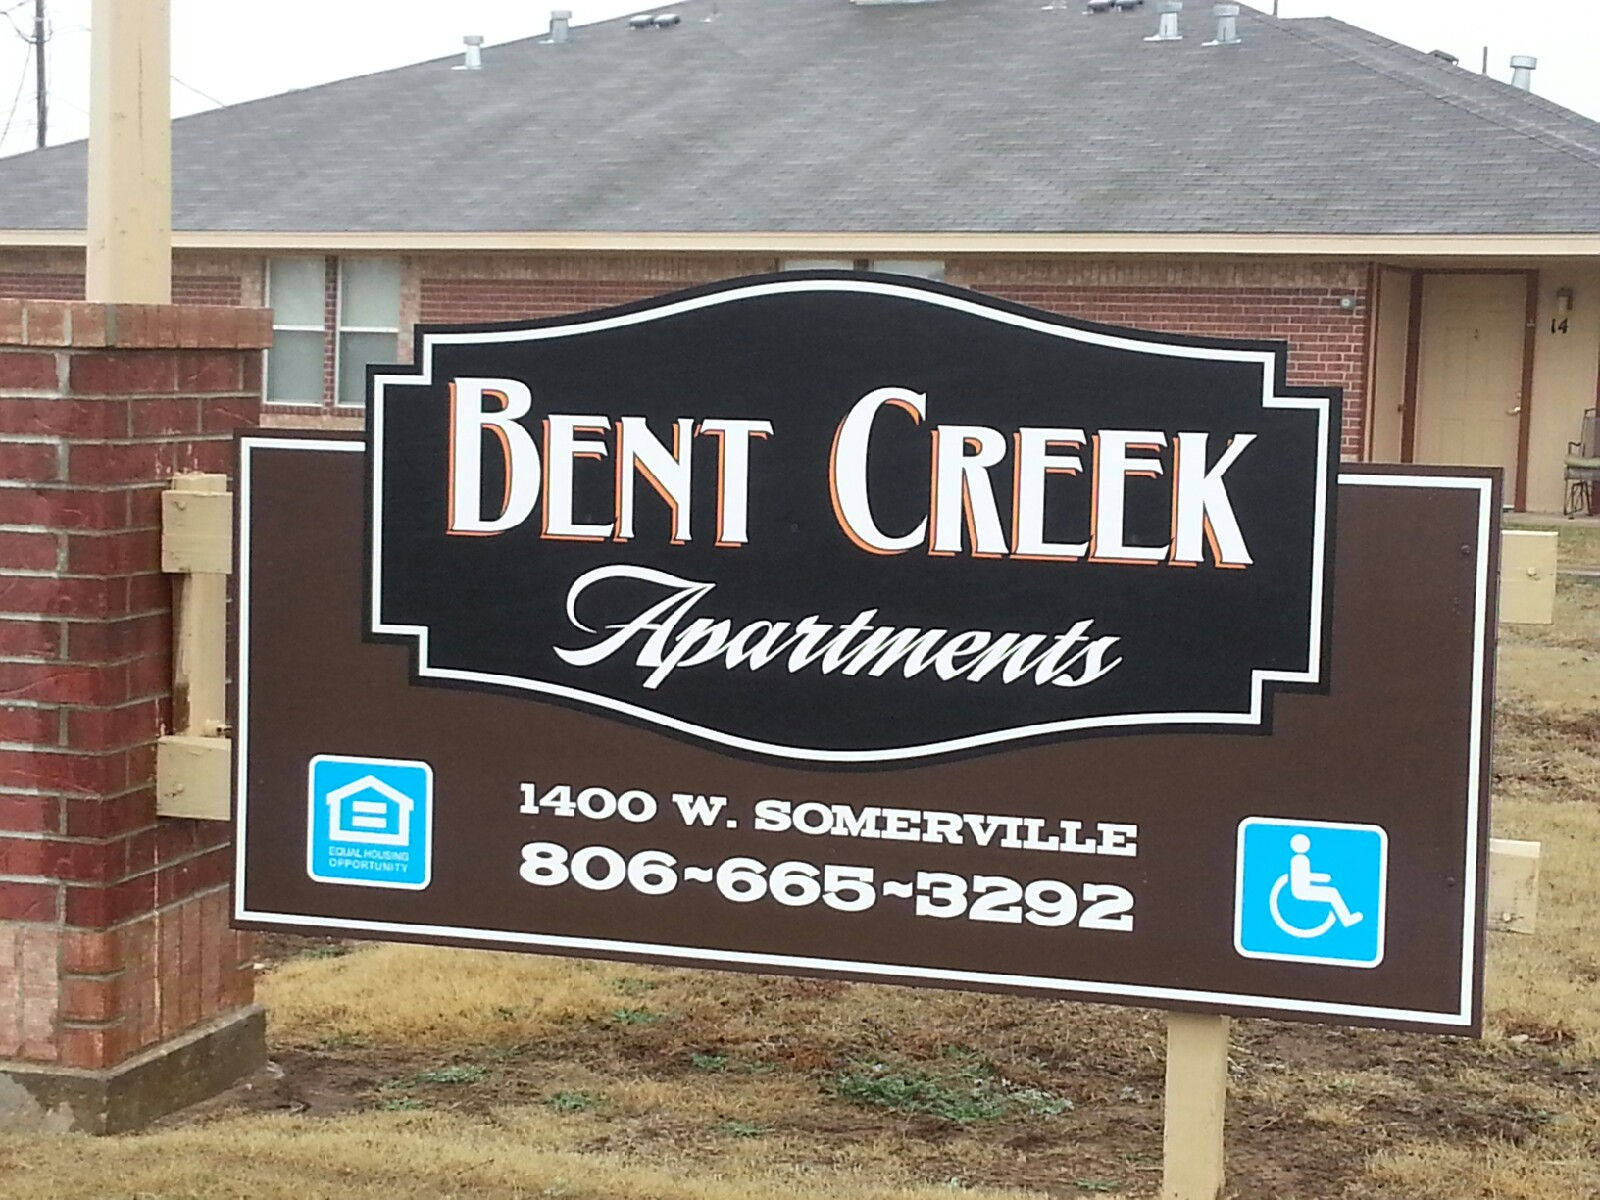 Bent Creek II Apartments